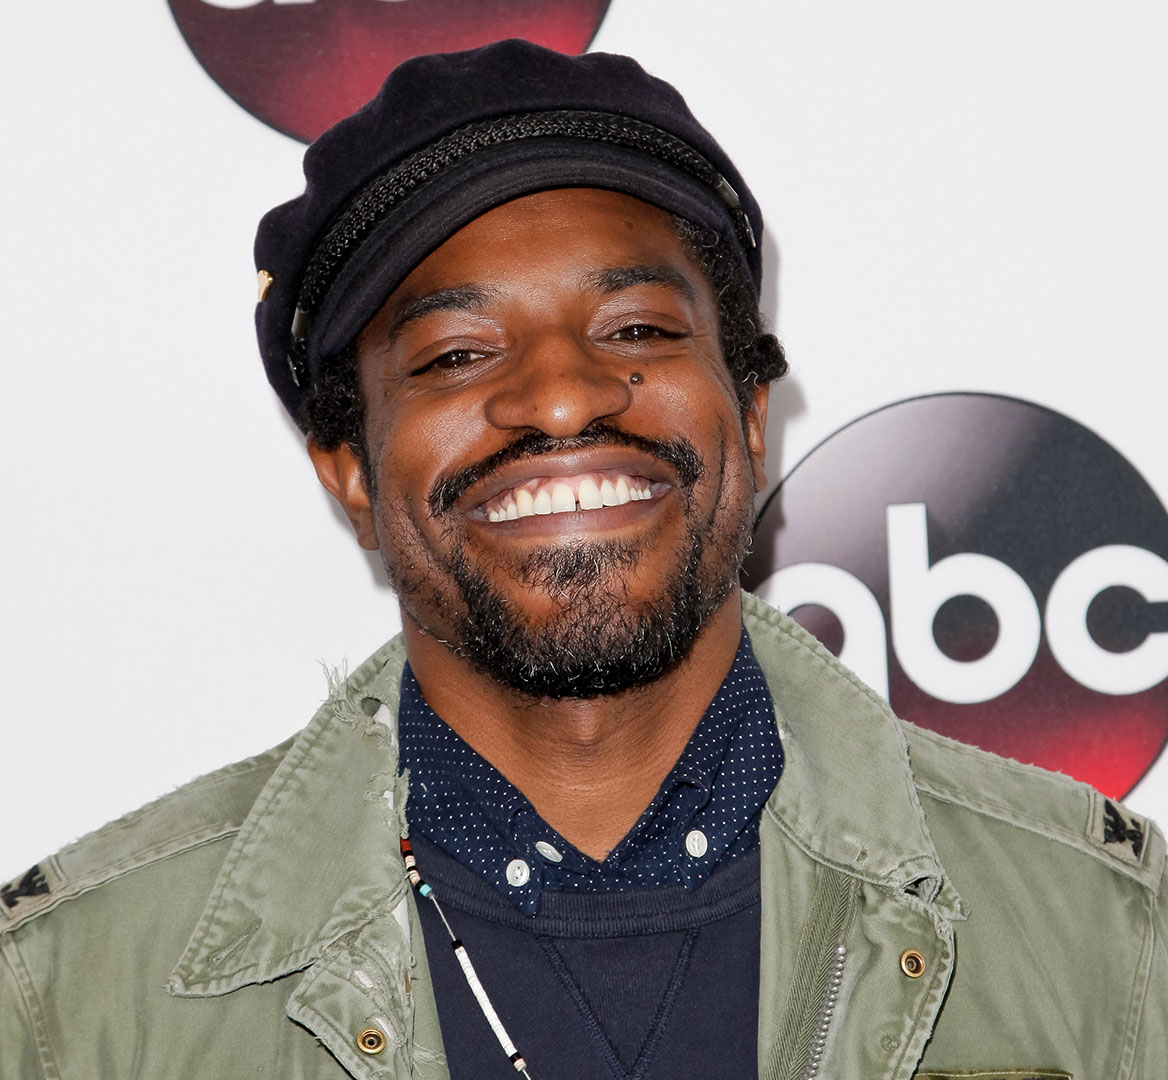 andre 3000 networth mobile